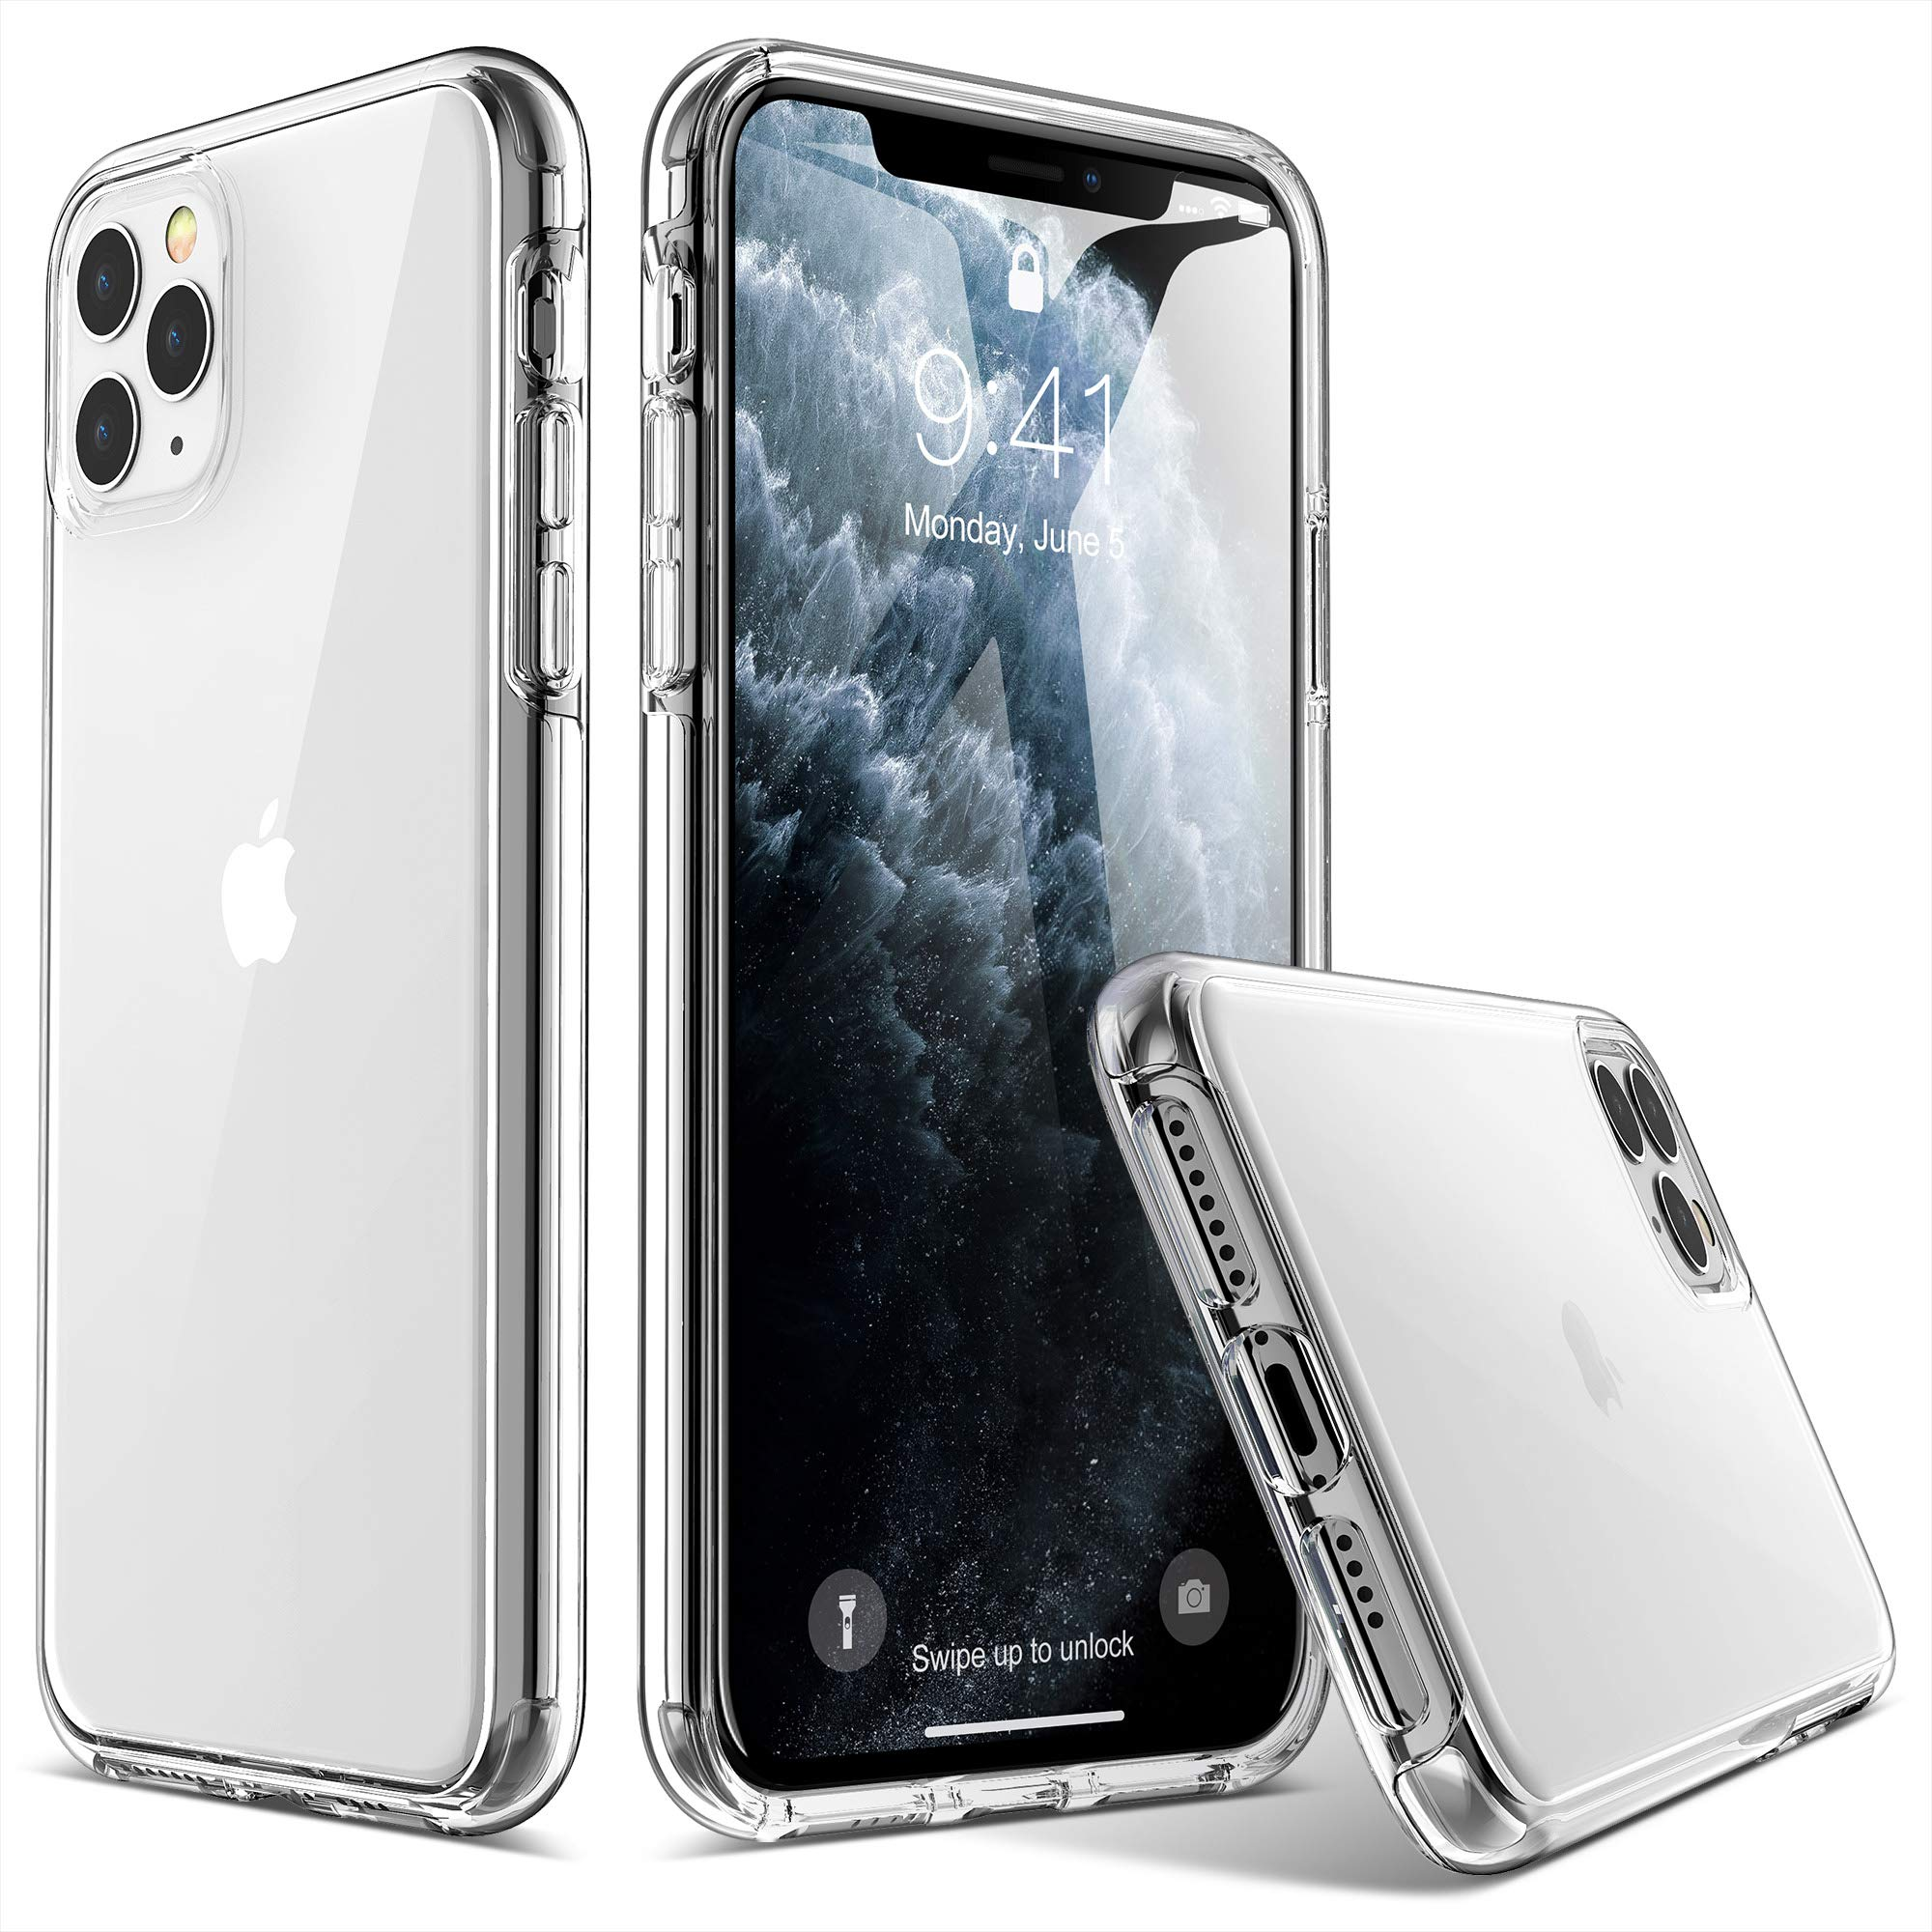 ULAK iPhone 11 Pro Max Case, Ultra Clear Hybrid Protective Case Slim Fit Transparent Anti-Scratch Shock Absorption Cover Designed Phone Case for iPhone Pro Max 6.5 ''(2019), HD Clear